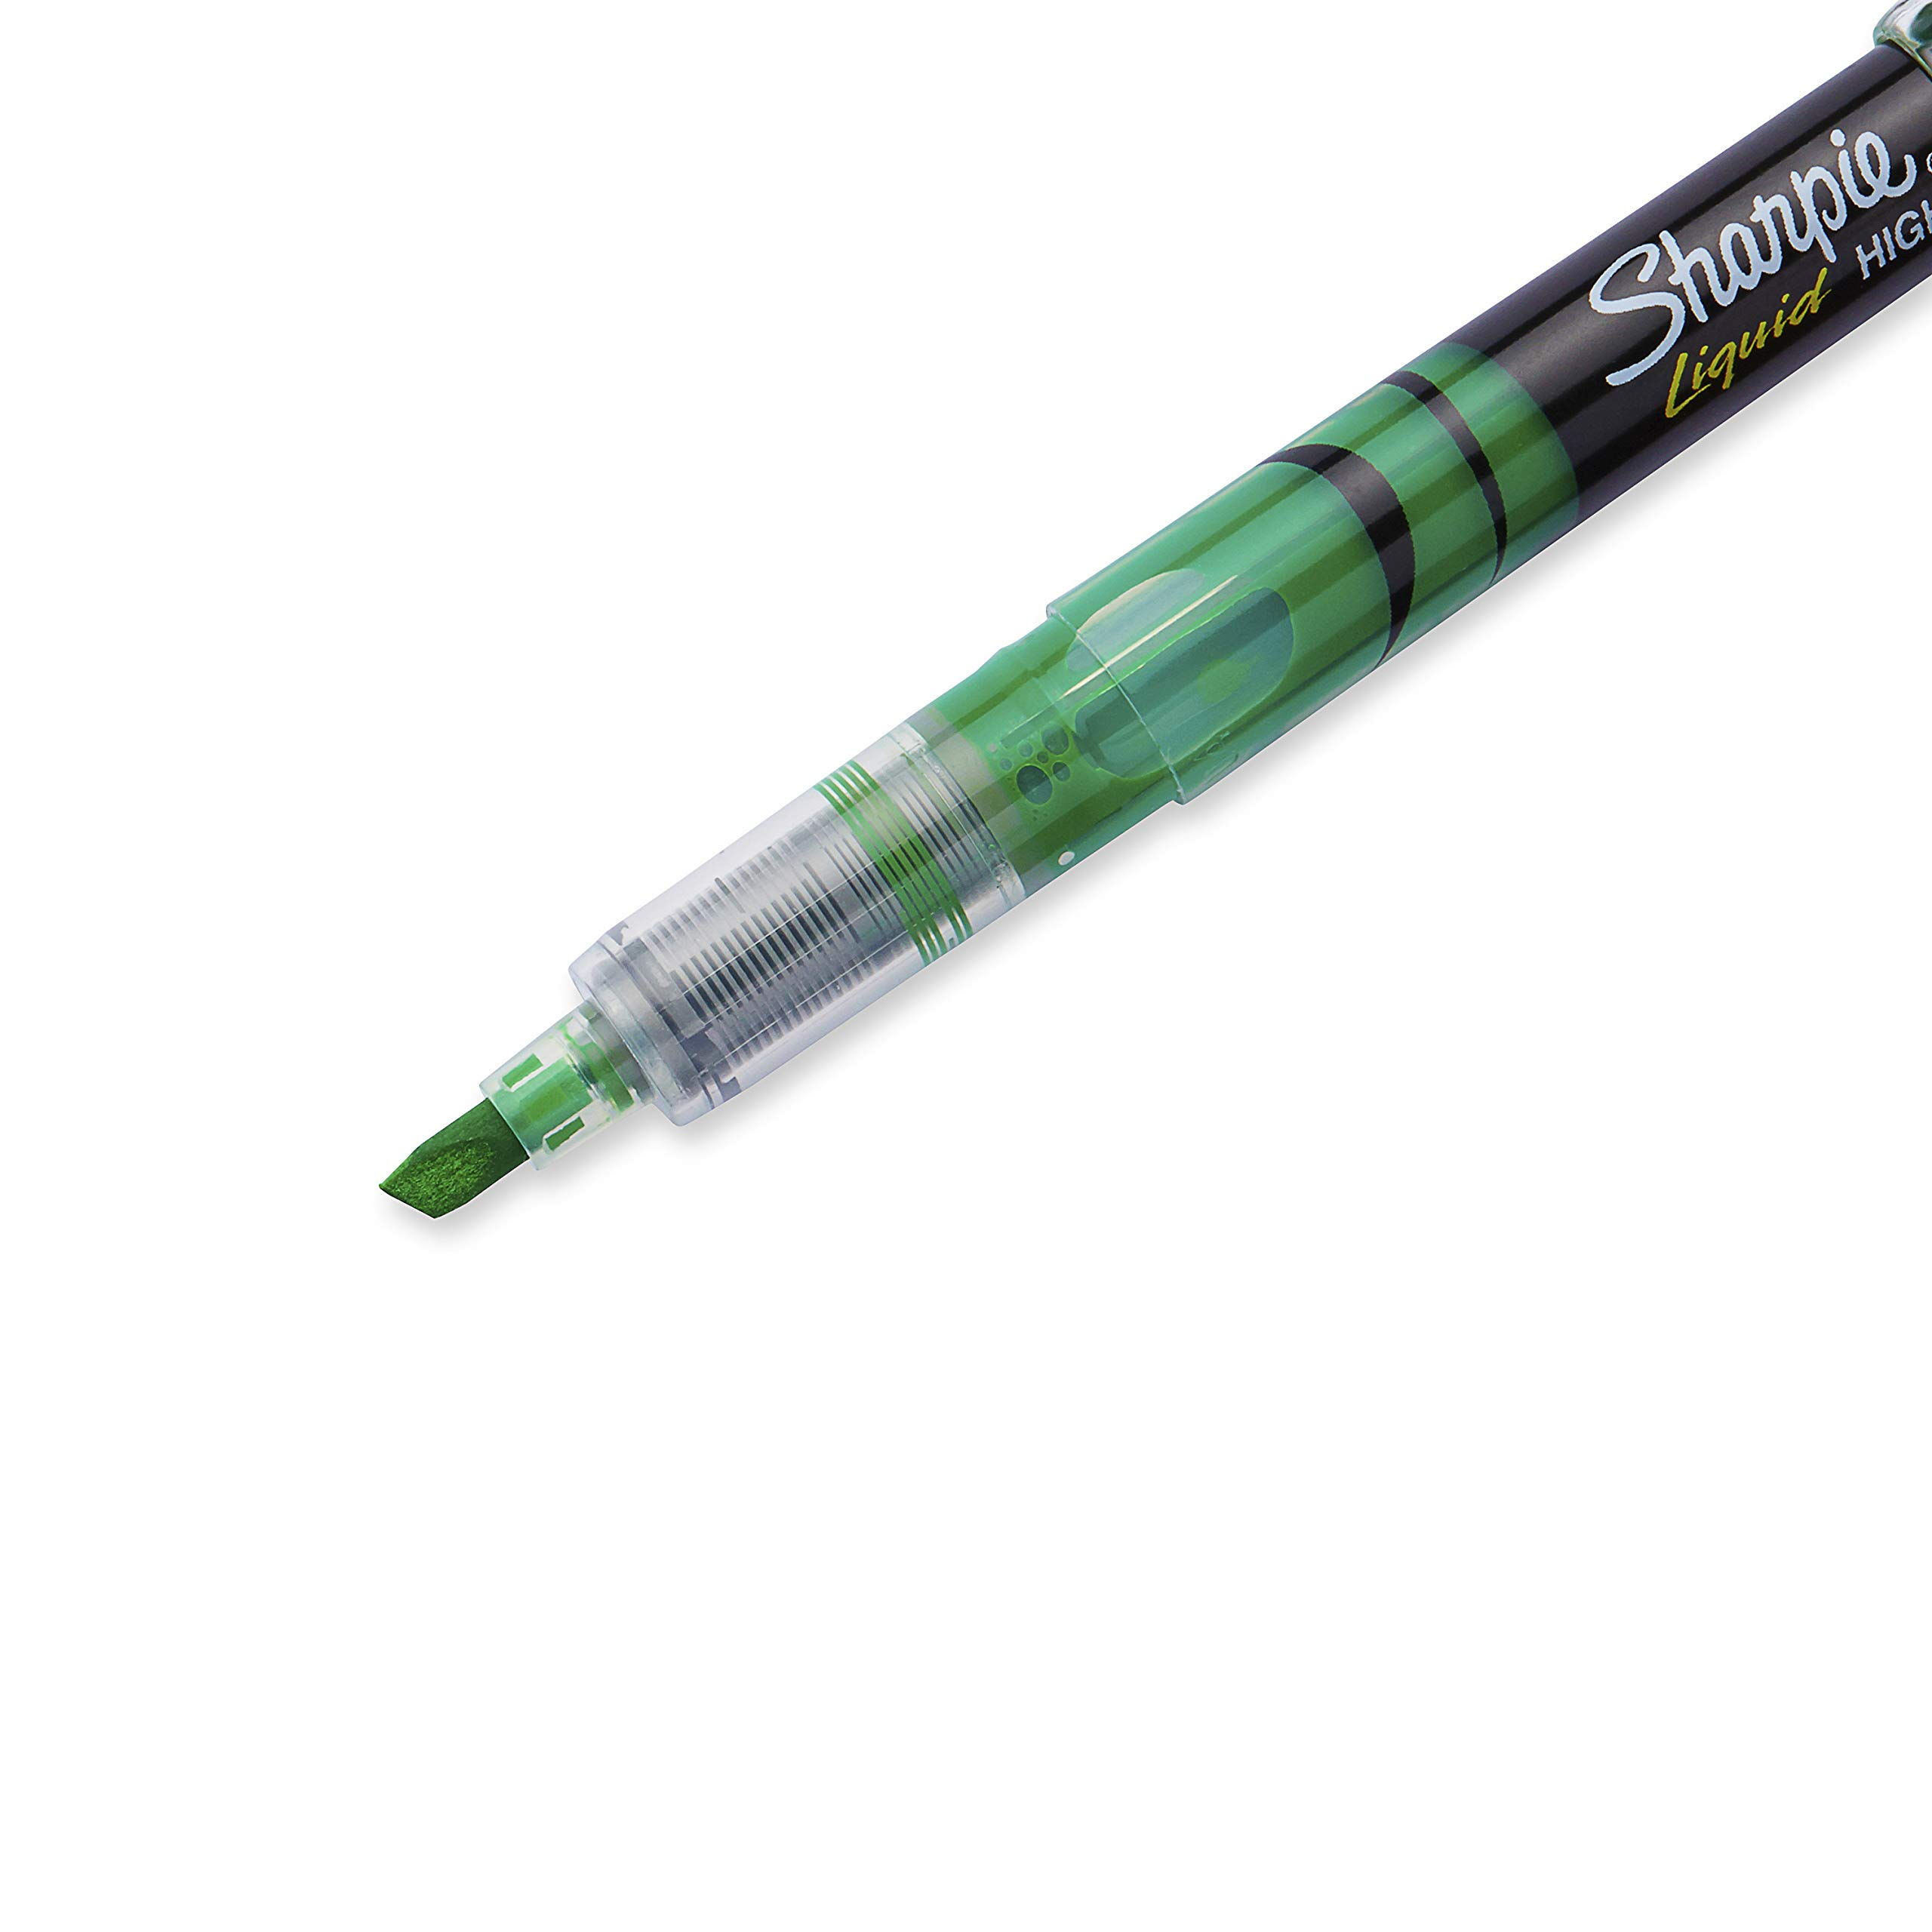 Sharpie Accent Pen-Style Highlighters, 12 Fluorescent Orange, 12 Fluorescent Yellow & 12 Fluorescent Green, Total of 36 Highlighters by Sharpie (Image #4)